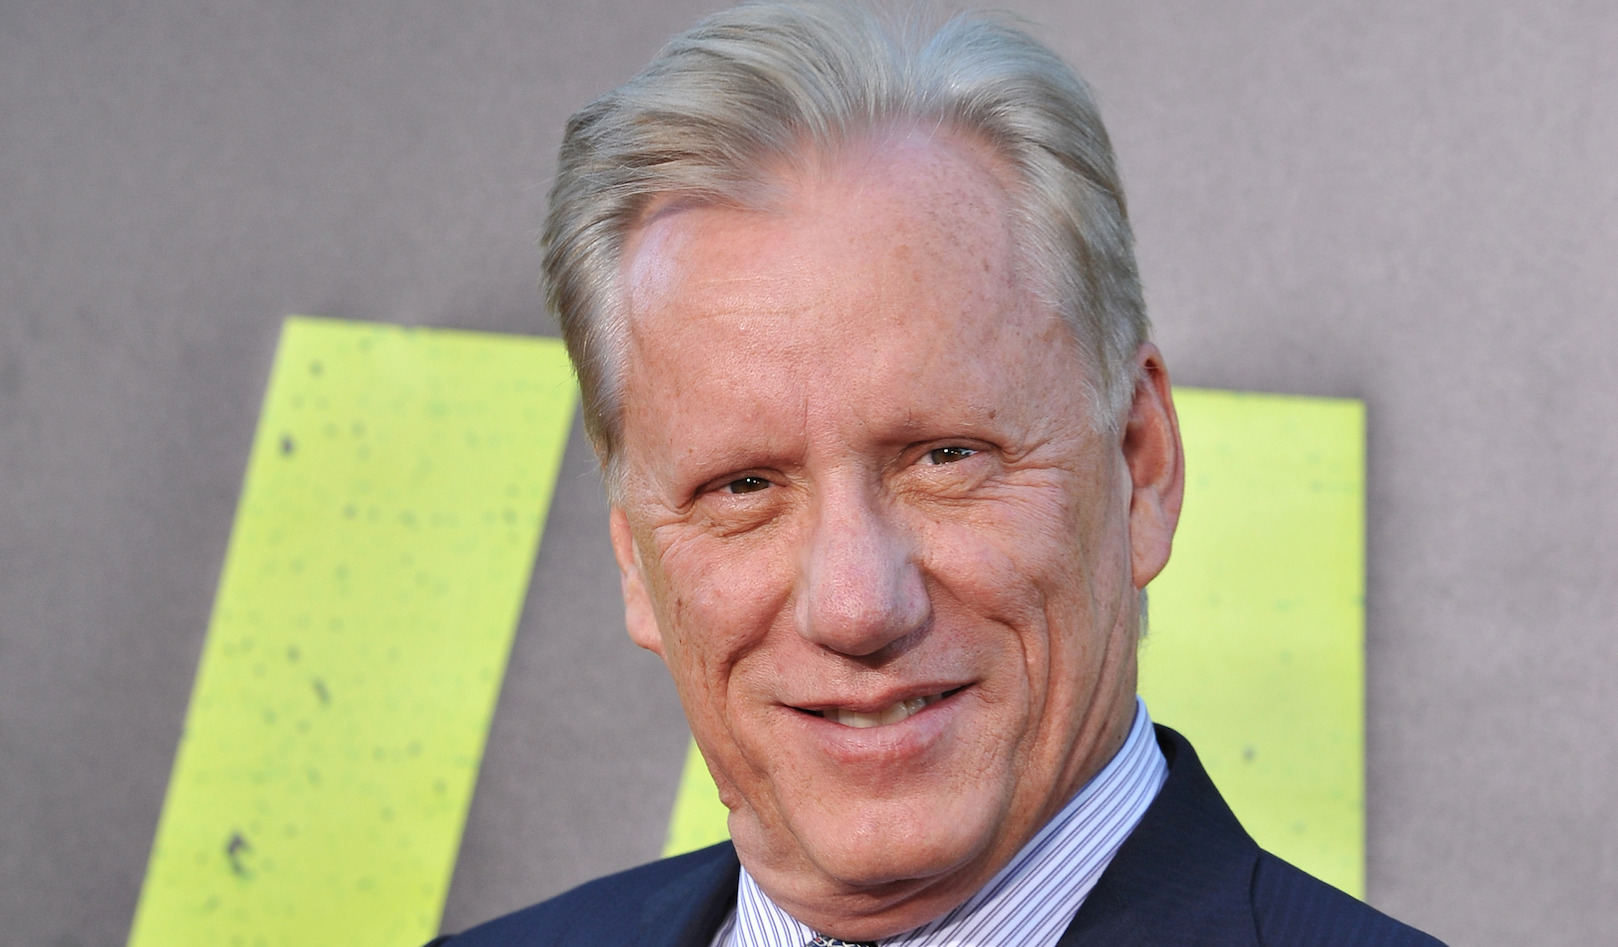 https://cdn0.tnwcdn.com/wp-content/blogs.dir/1/files/2016/02/shutterstock_109431590.jpg James Woods Jobs